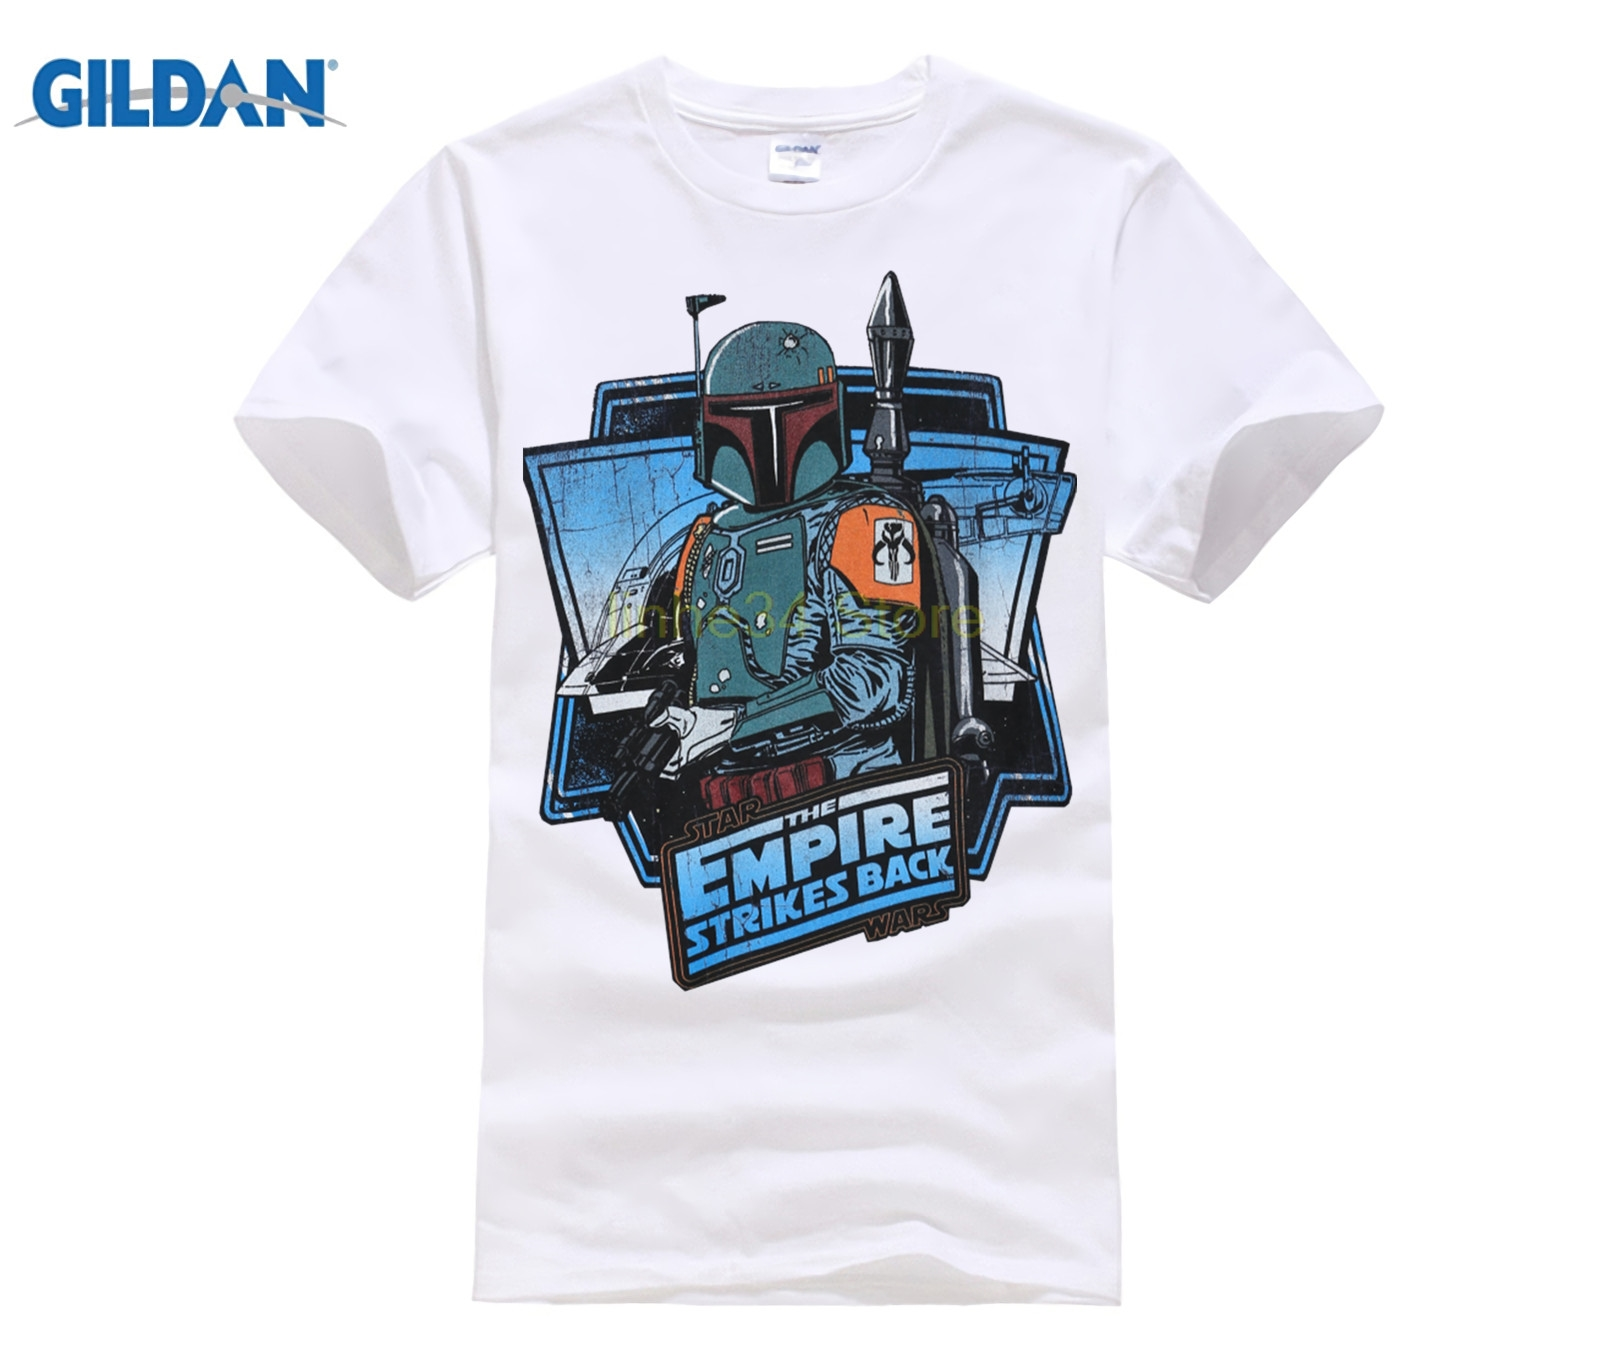 41ac3464cb3 GILDAN New Retro T Shirt Men Star Wars Top Tees Empire Strike Back T shirt  Casual 100% Cotton Solid Movie Geek Short Sleeve-in T-Shirts from Men s  Clothing ...